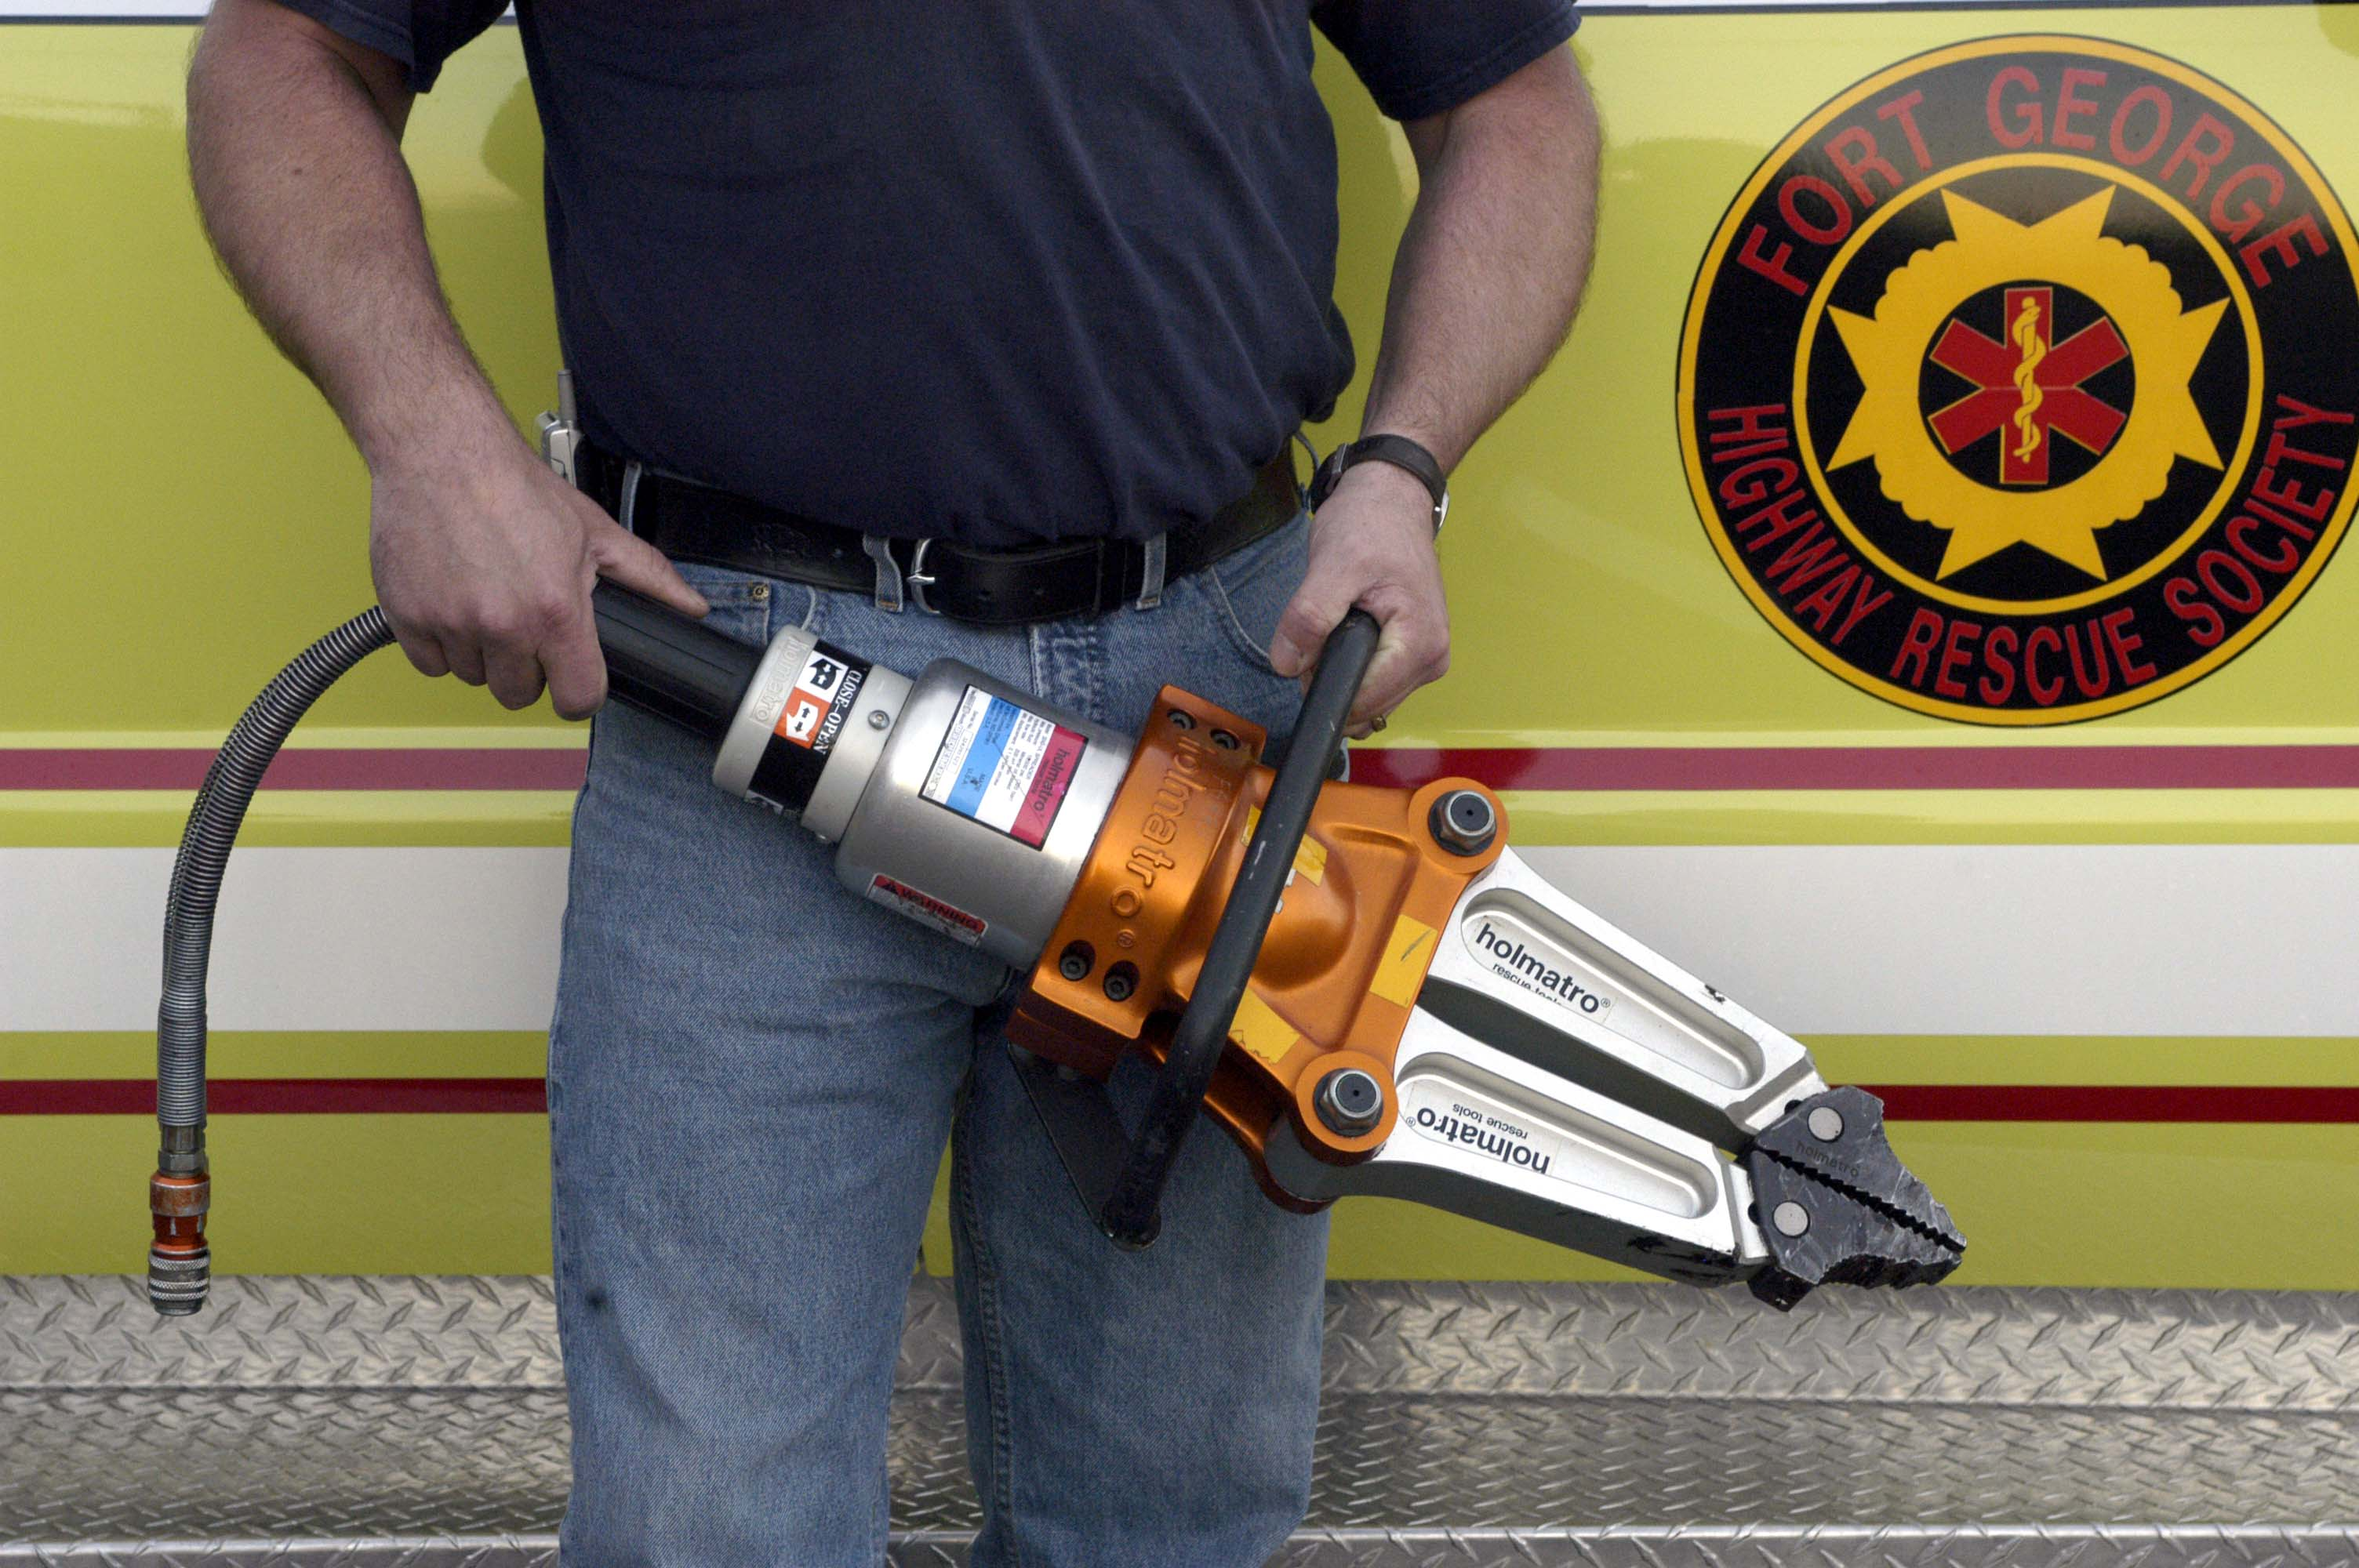 Hydraulic Spreader Jaws Of Life : Pg regional highway rescue our equipment